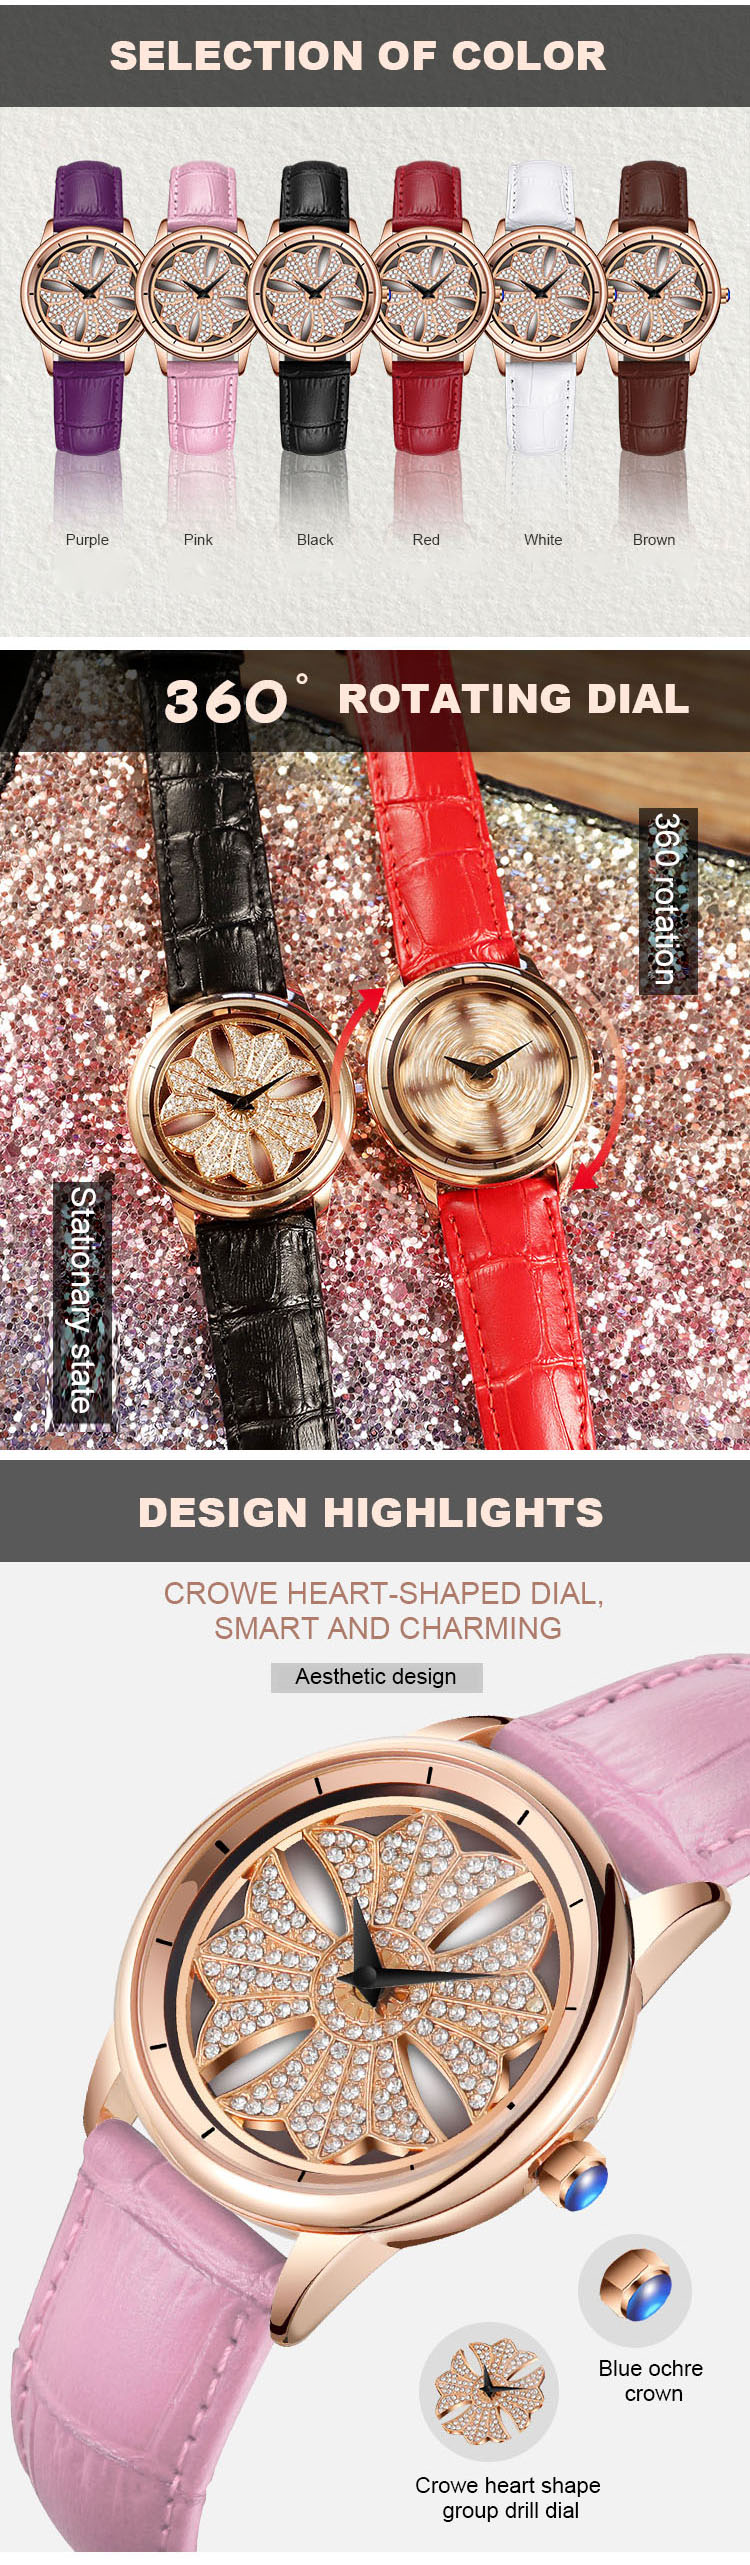 Women's Diamond Rotating Watches 2019 New Fashion Trend Genuine Leather Watch For Ladies Casual And Girls